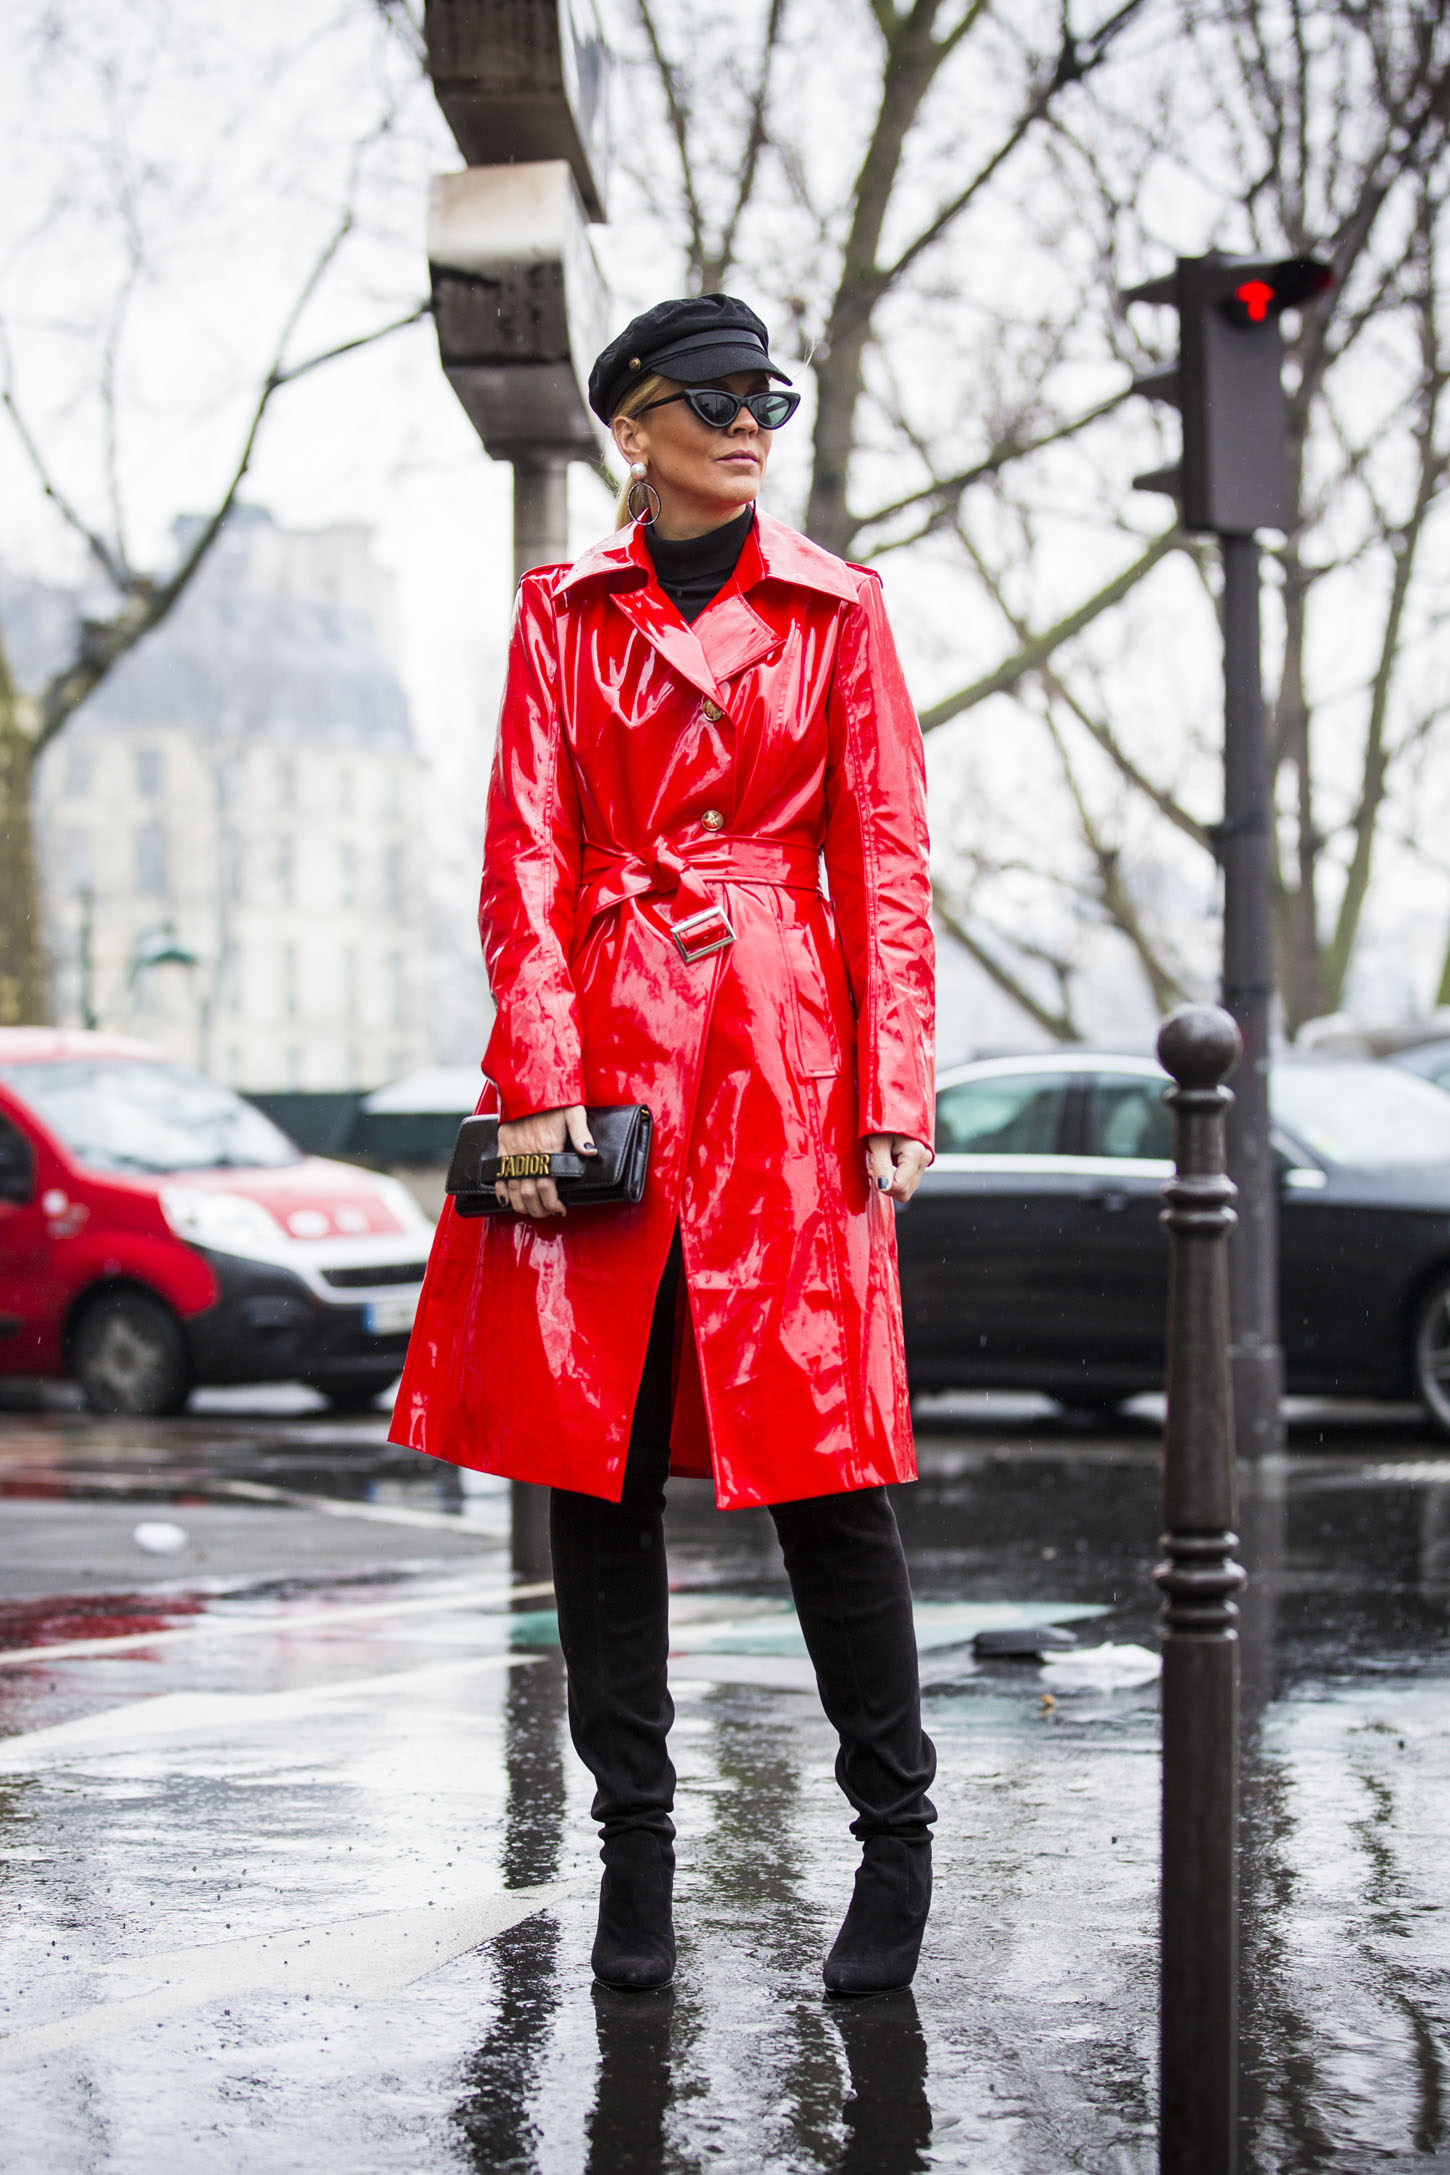 PARIS, FRANCE - MARCH 02:  Lorena Campello, wearing red laminated trench coat and Dior bag, is seen in the streets of Paris before the Balmain show during Paris Fashion Week Womenswear Fall/Winter 2018/2019 on March 2, 2018 in Paris, France. (Photo by Claudio Lavenia/Getty Images)